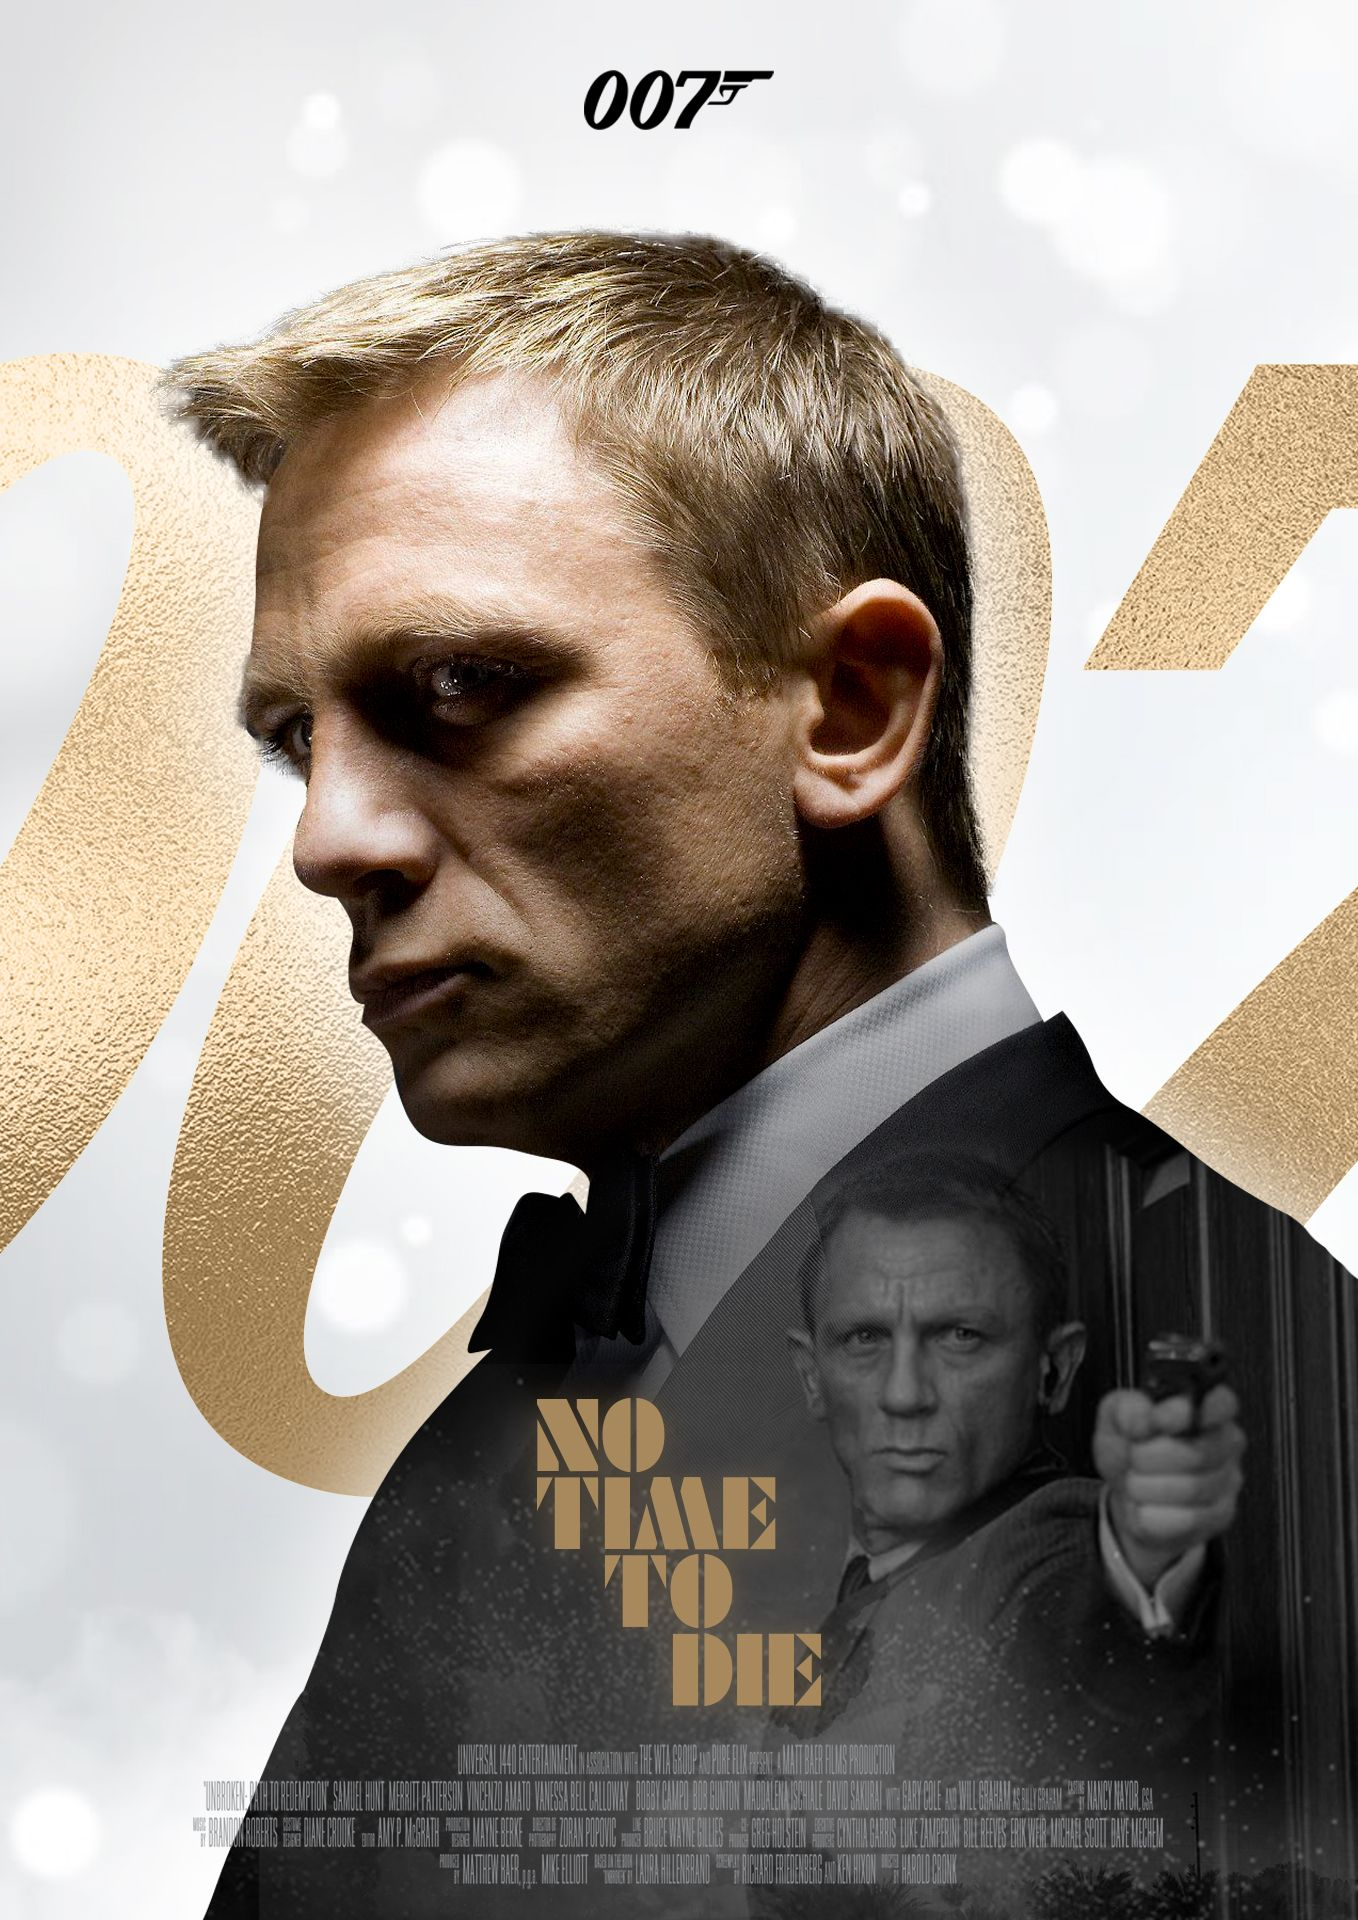 007 No Time To Die Movie Poster Personal Work